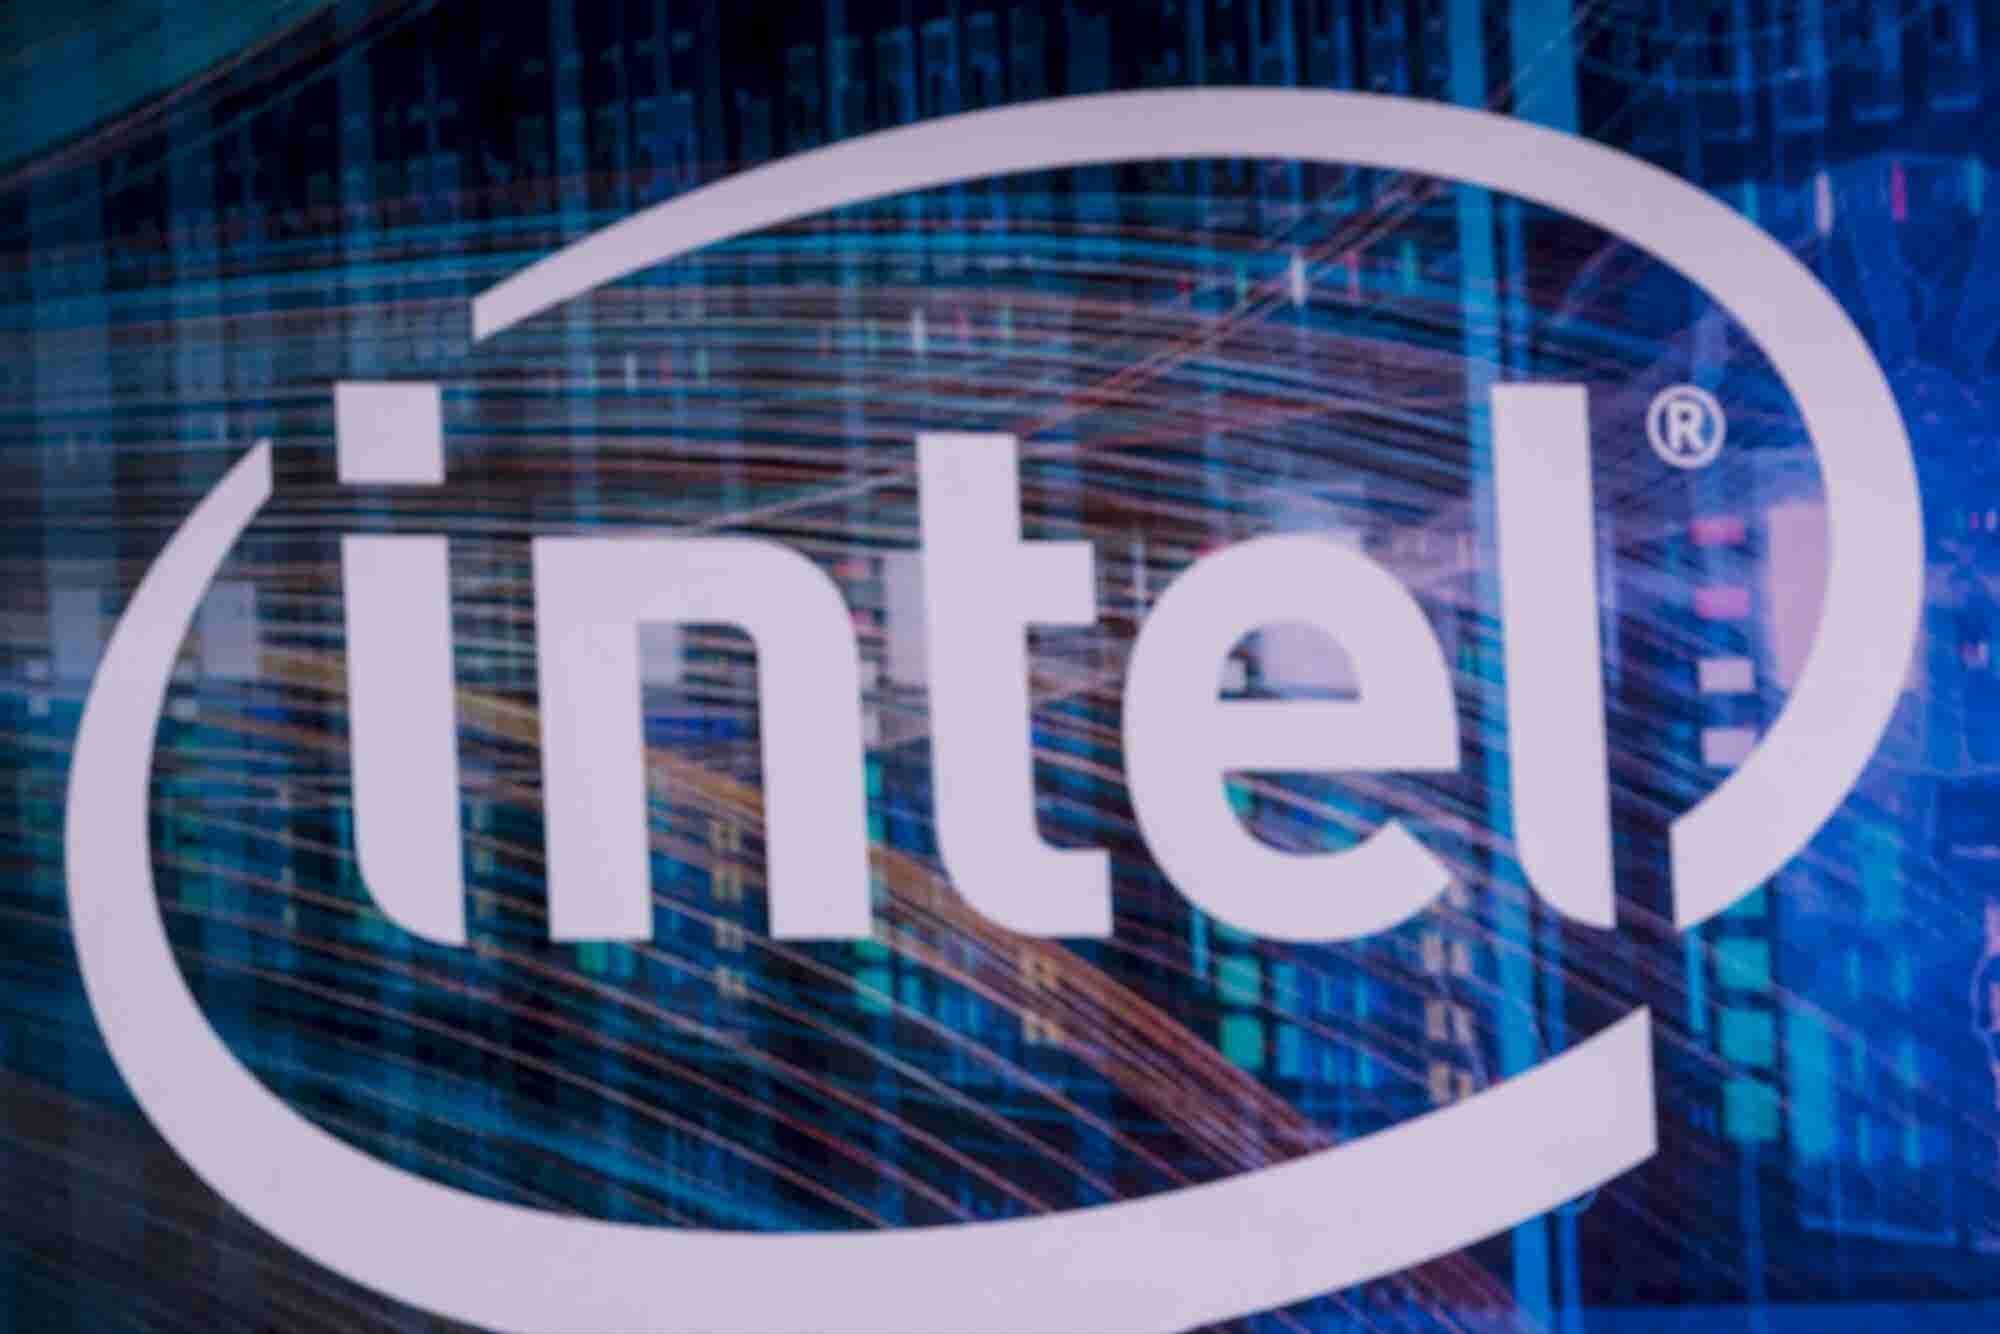 Intel Comes Out With Smart Glasses